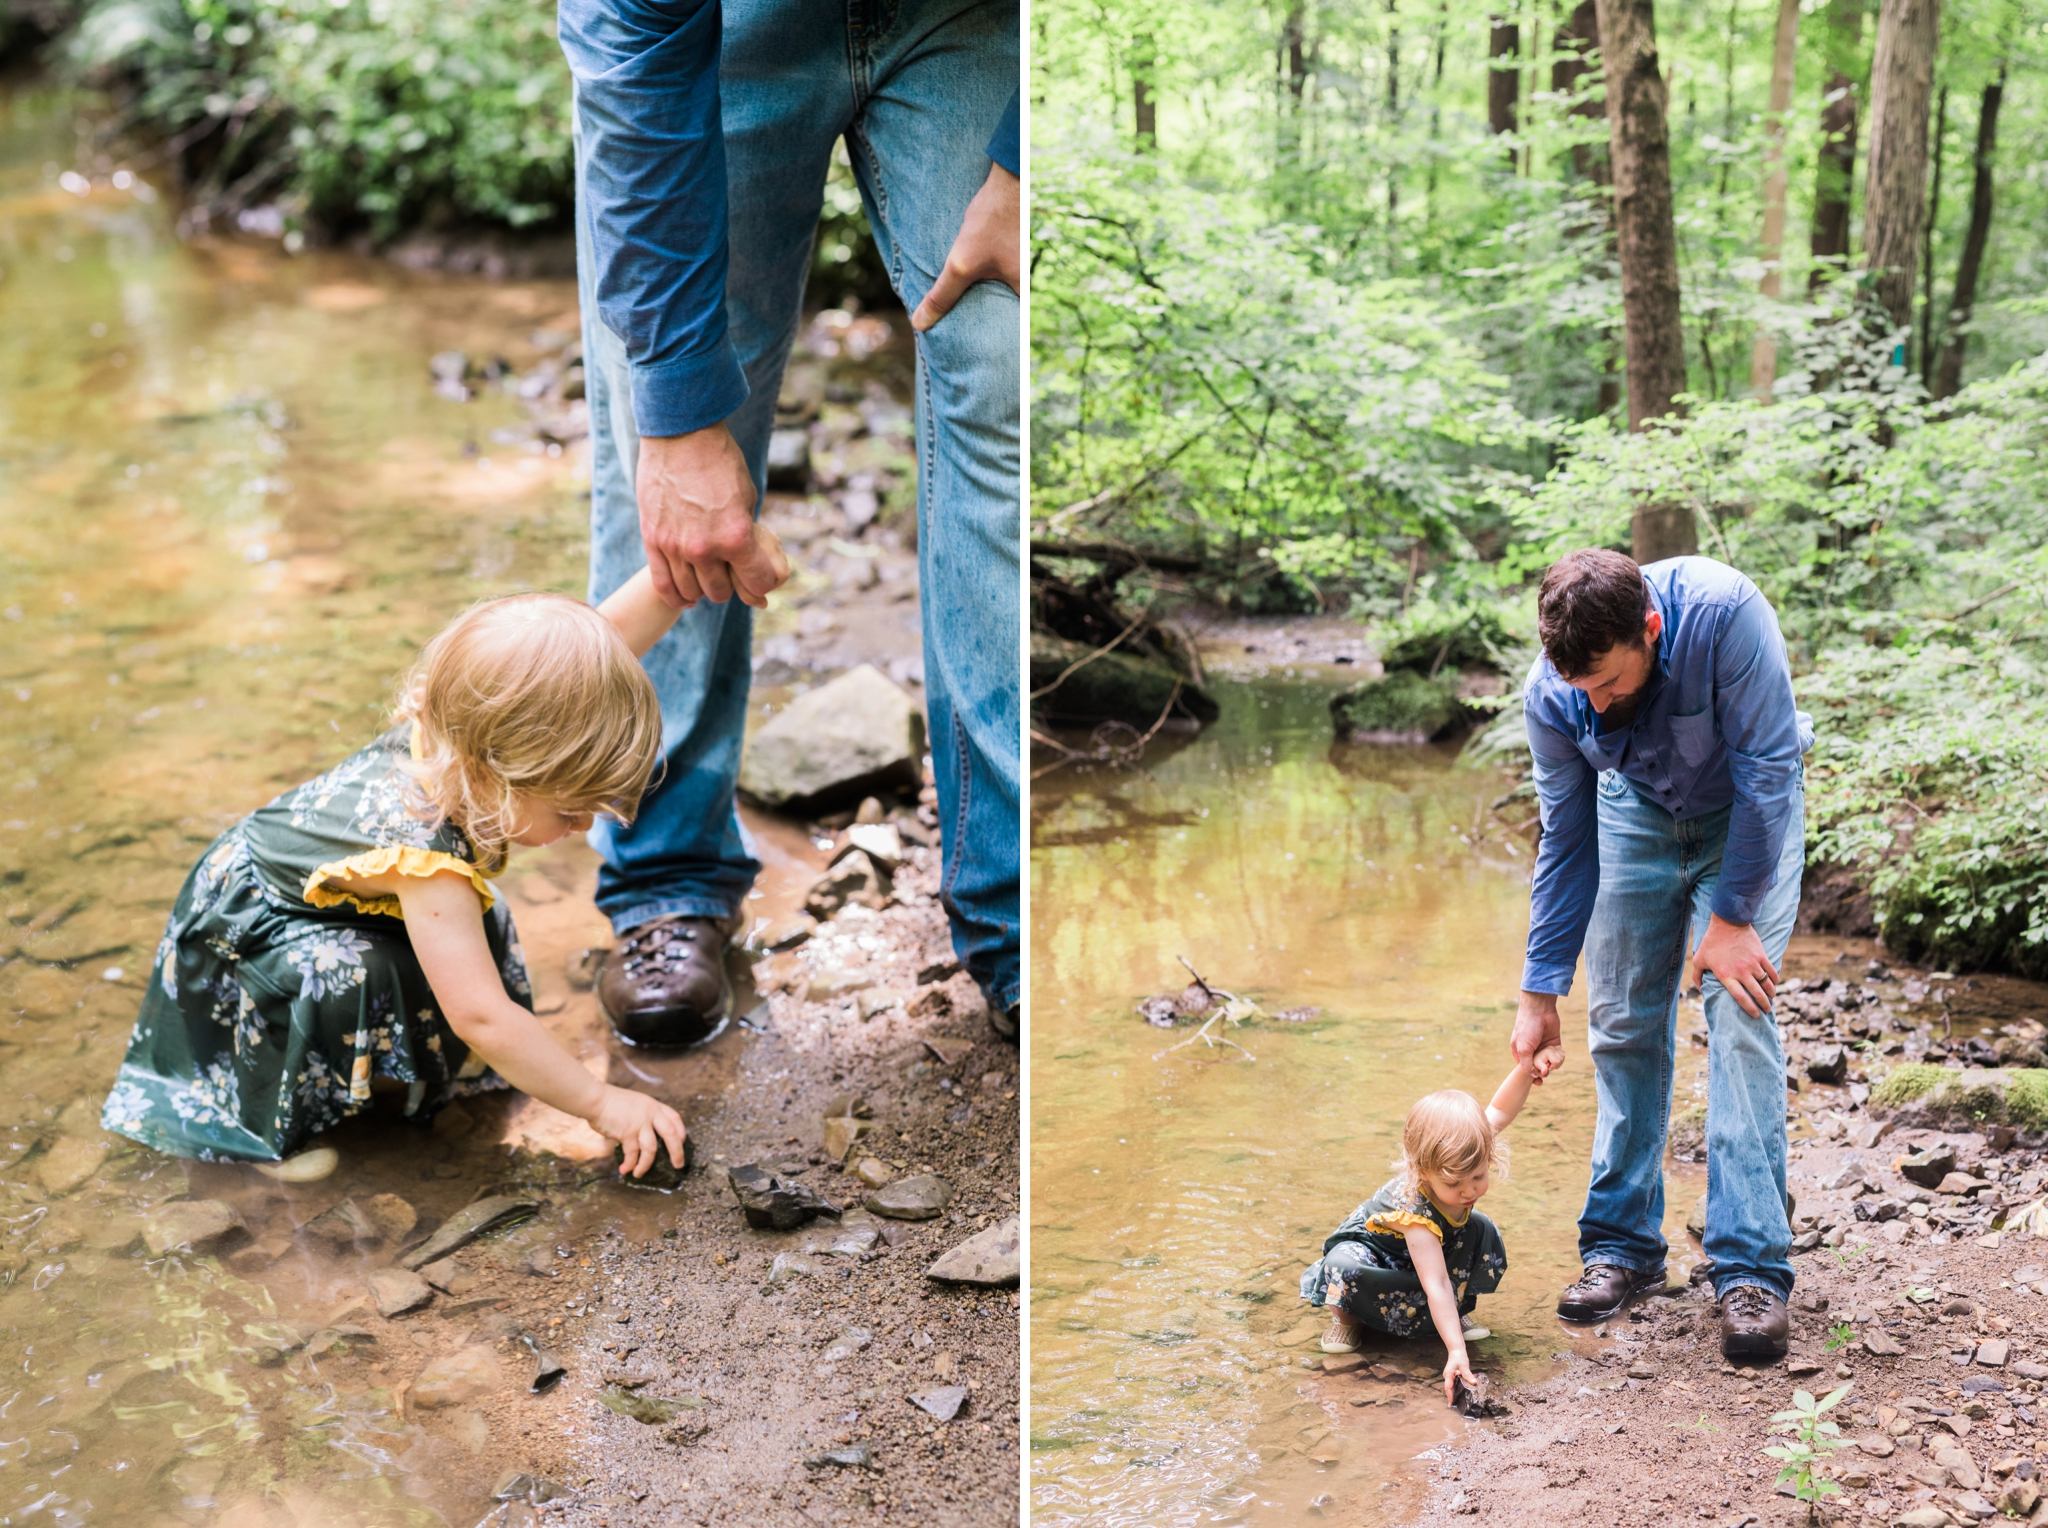 Emily Grace Photography, Lancaster PA Family Photographer, Elizabethtown PA Family Photographer, Adventure Family Photos, Camping Family Photos, Lifestyle Family Portraits